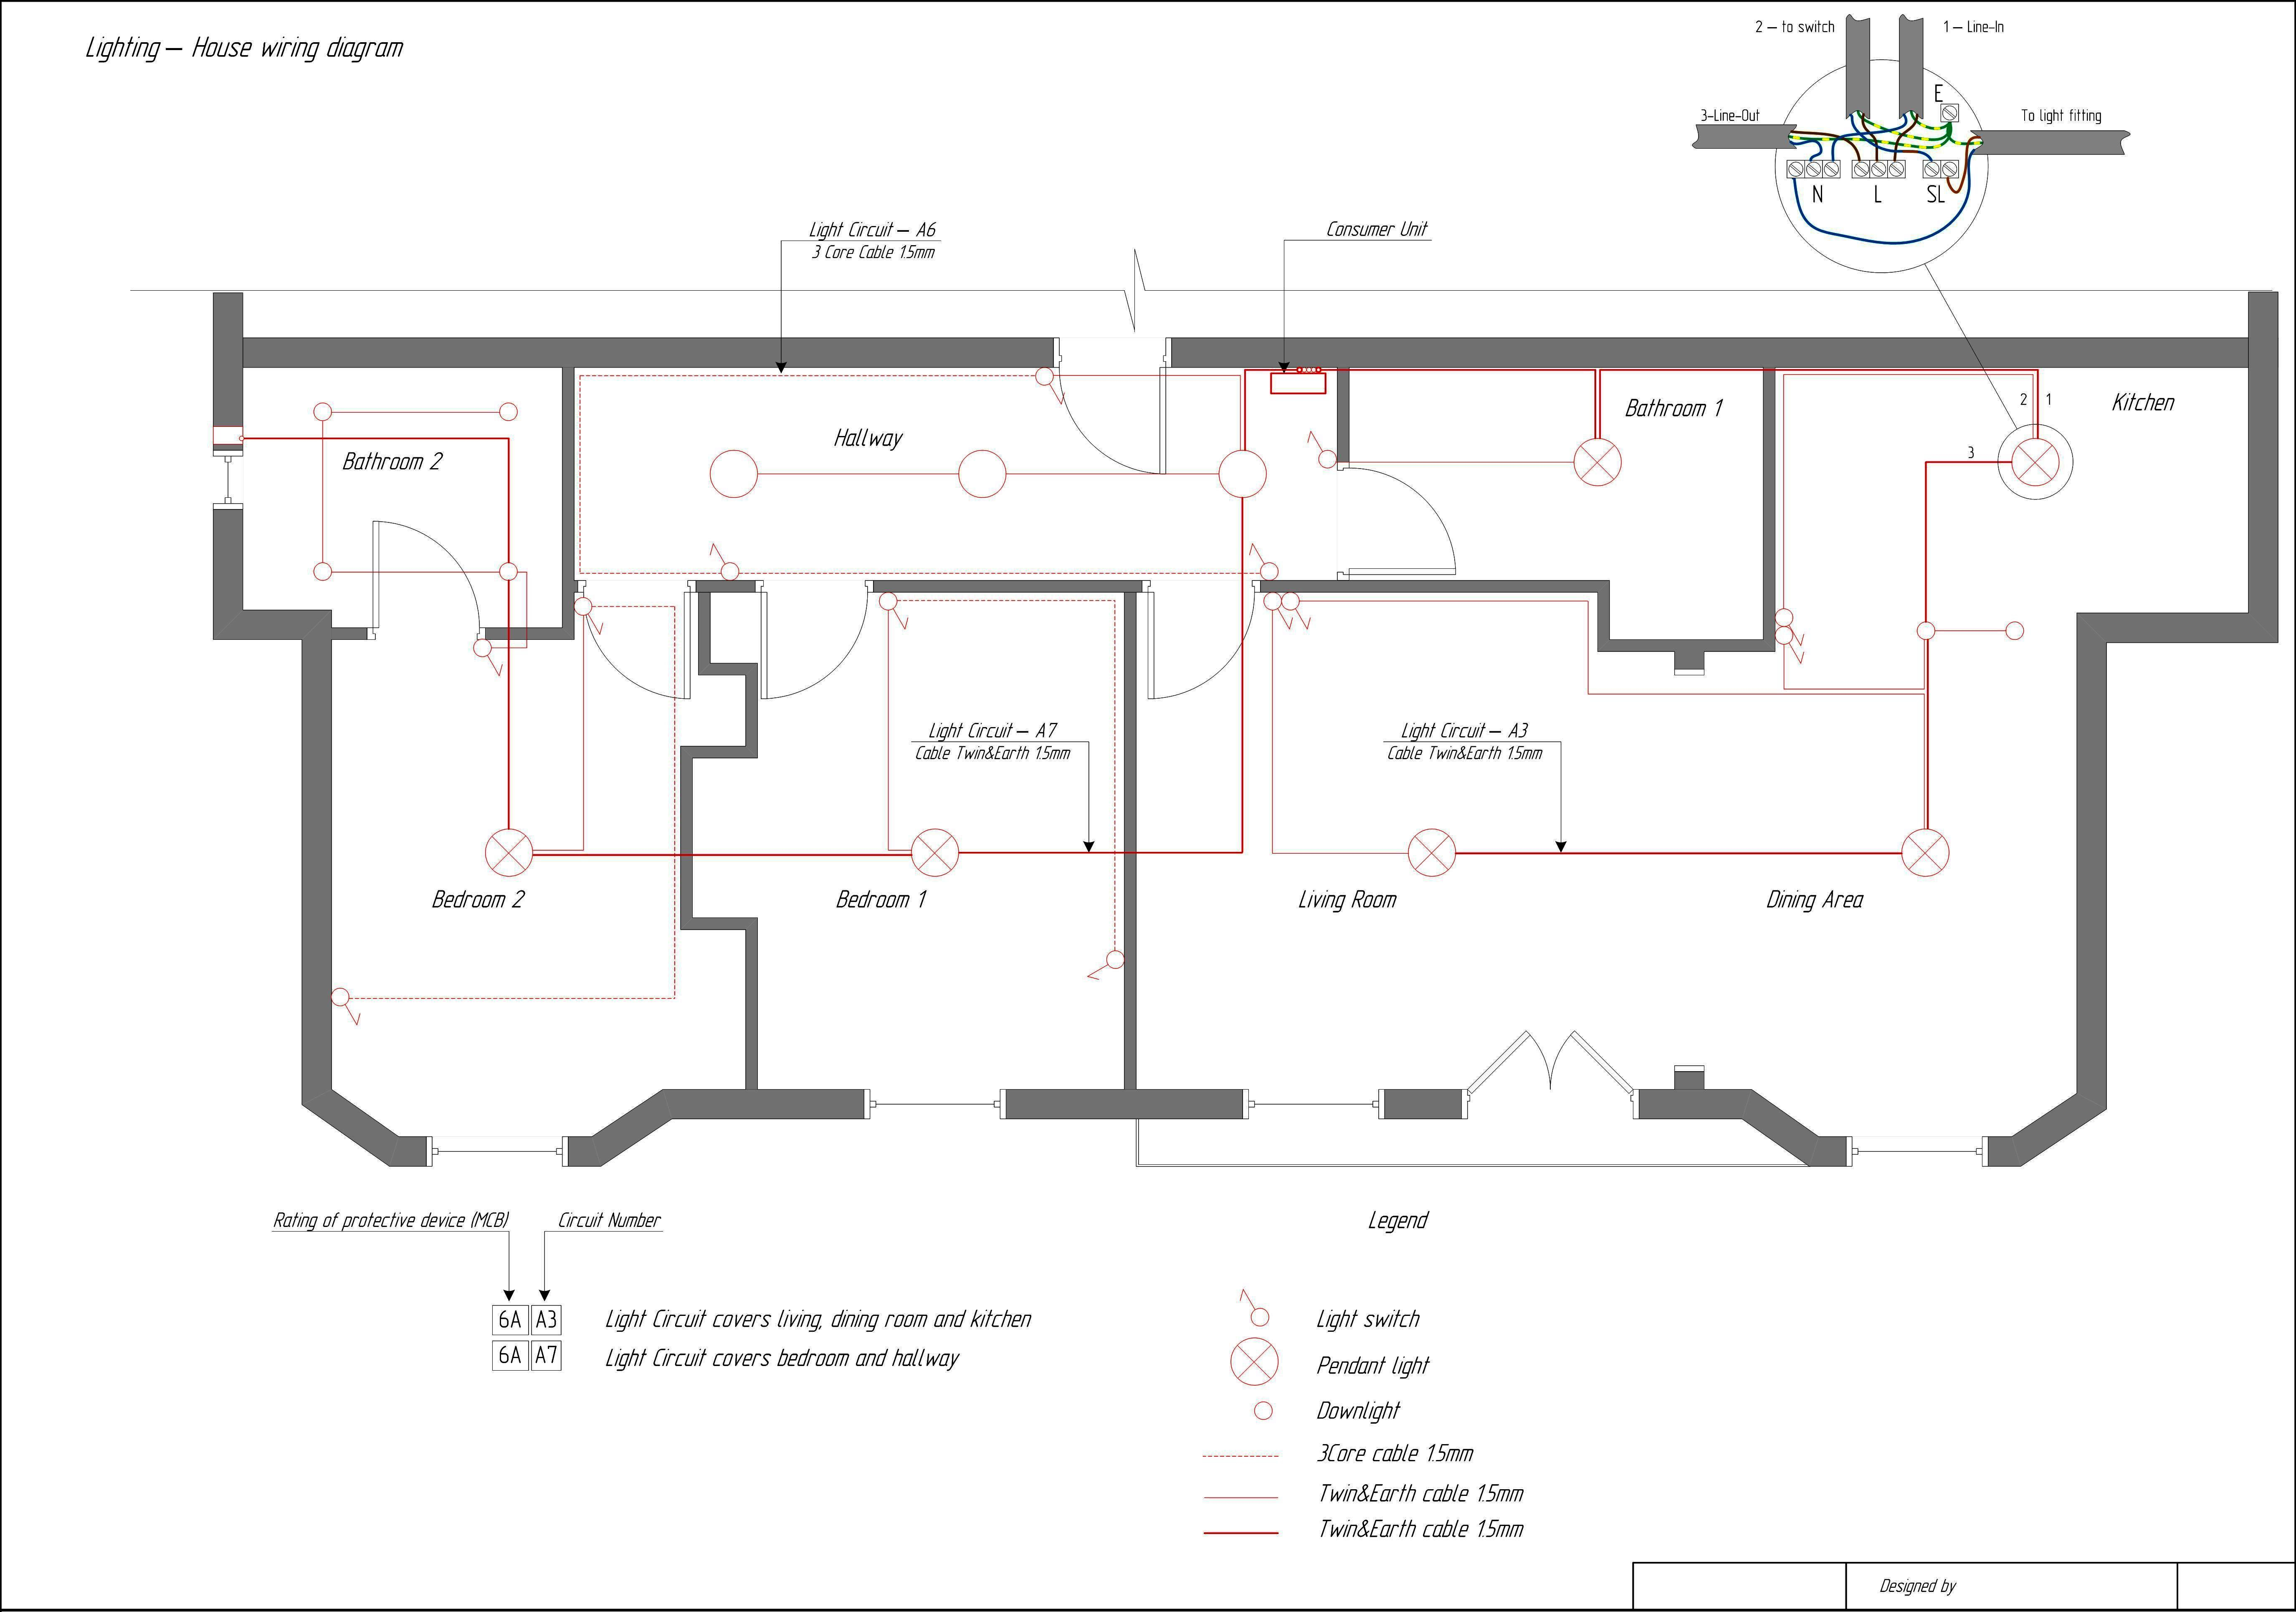 House Wiring Diagrams - Data Wiring Diagram Schematic - Electrical Circuit Diagram House Wiring